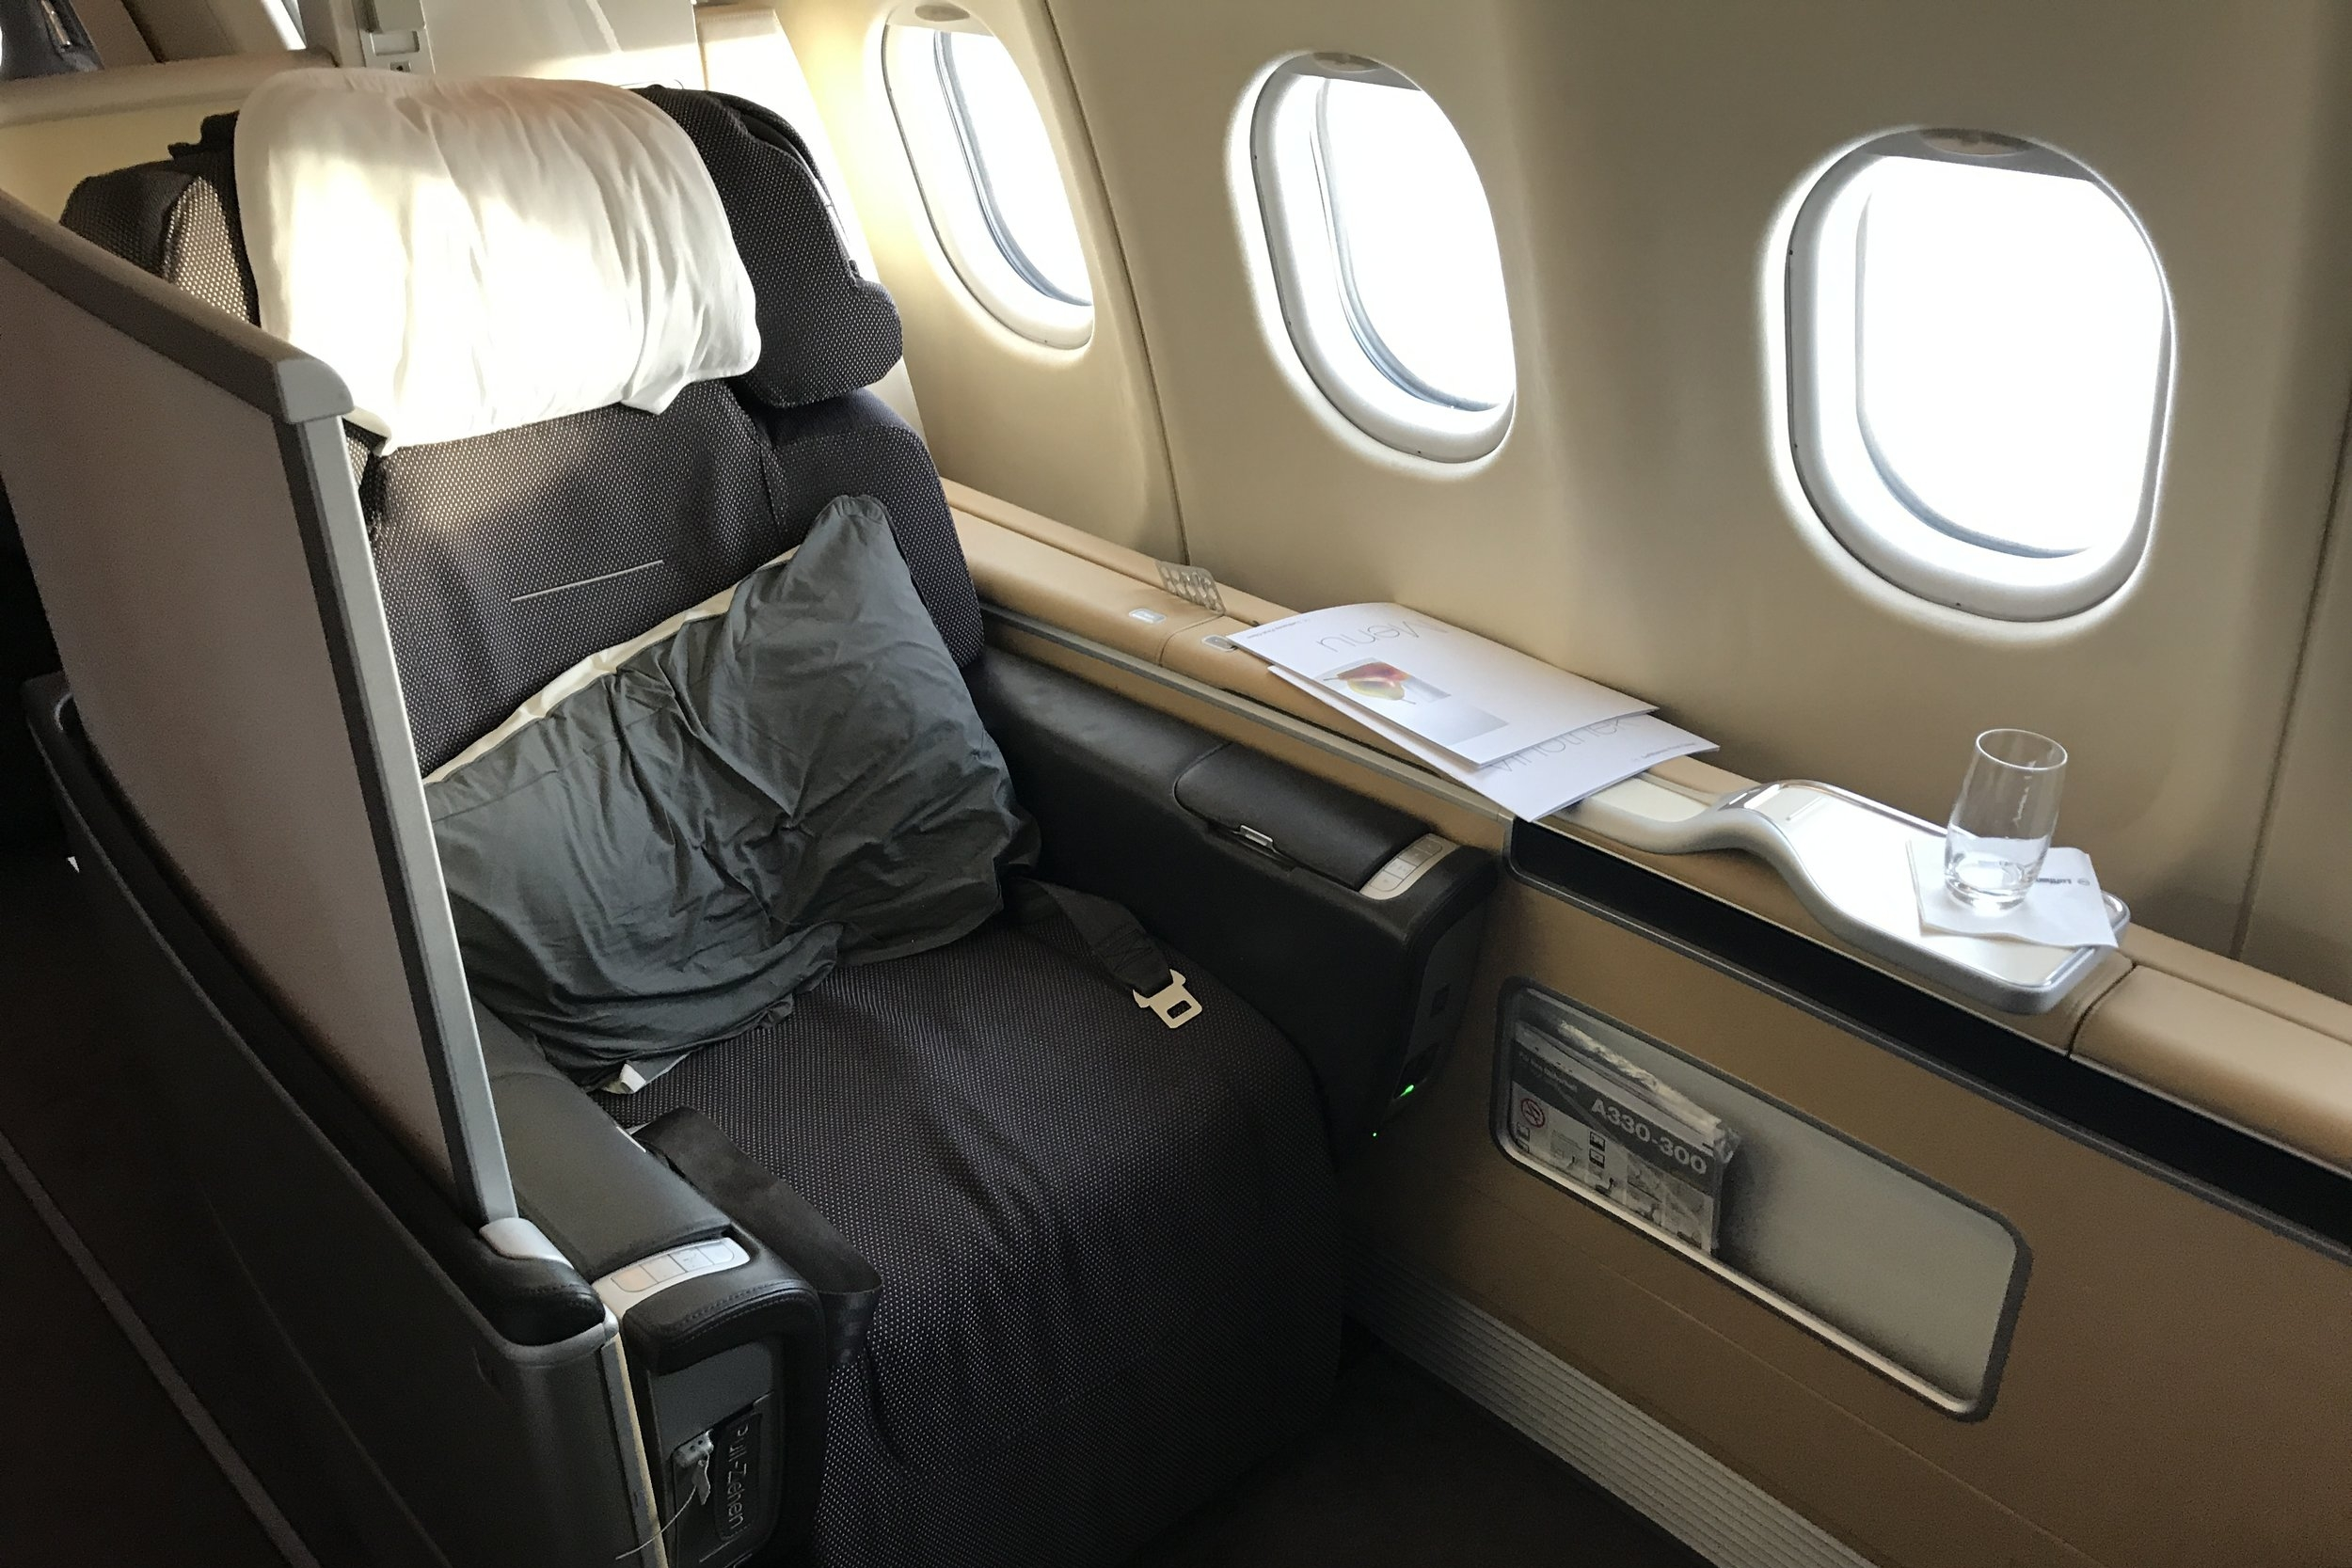 Lufthansa First Class on the Airbus A330